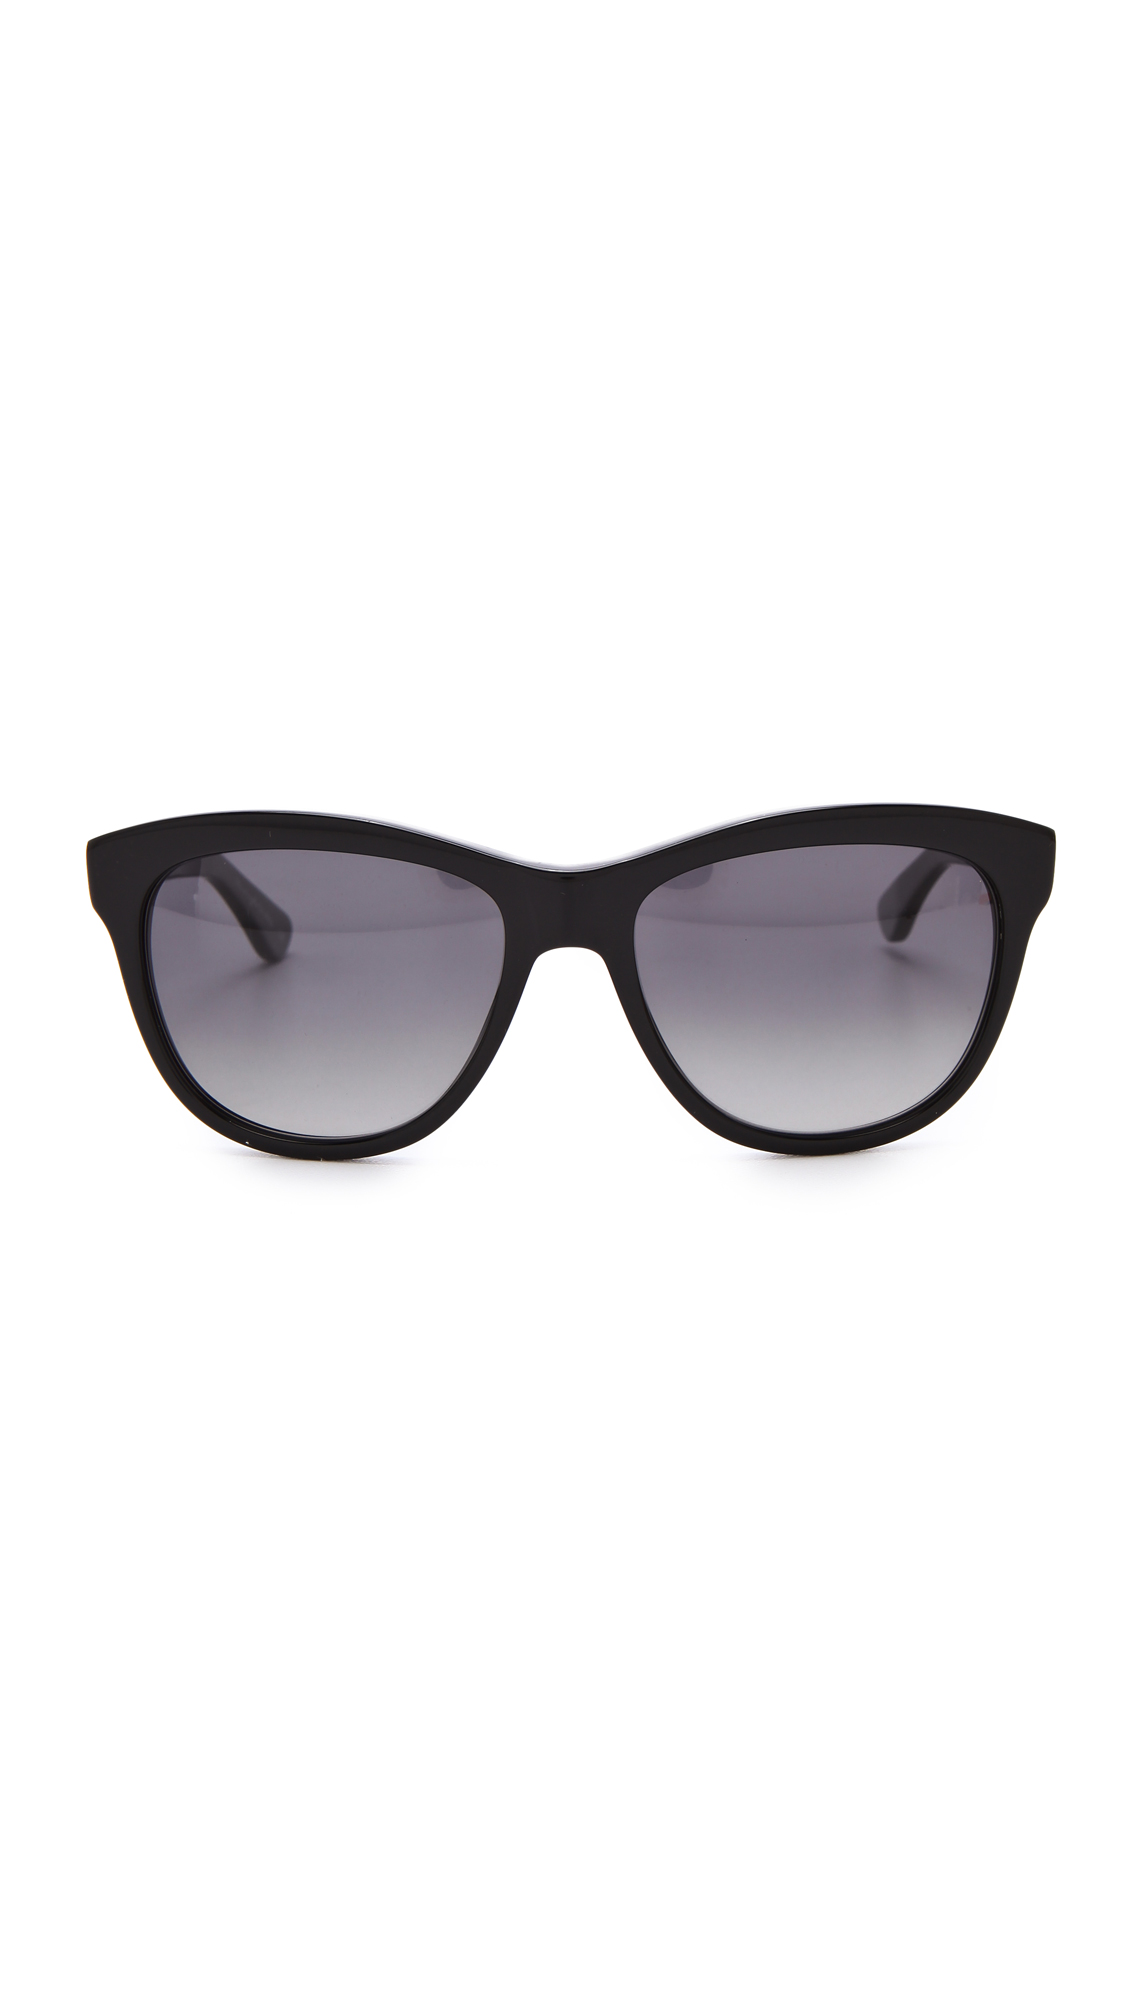 5f26c9d305 Lyst - Oliver peoples Reigh Polarized Sunglasses in Black